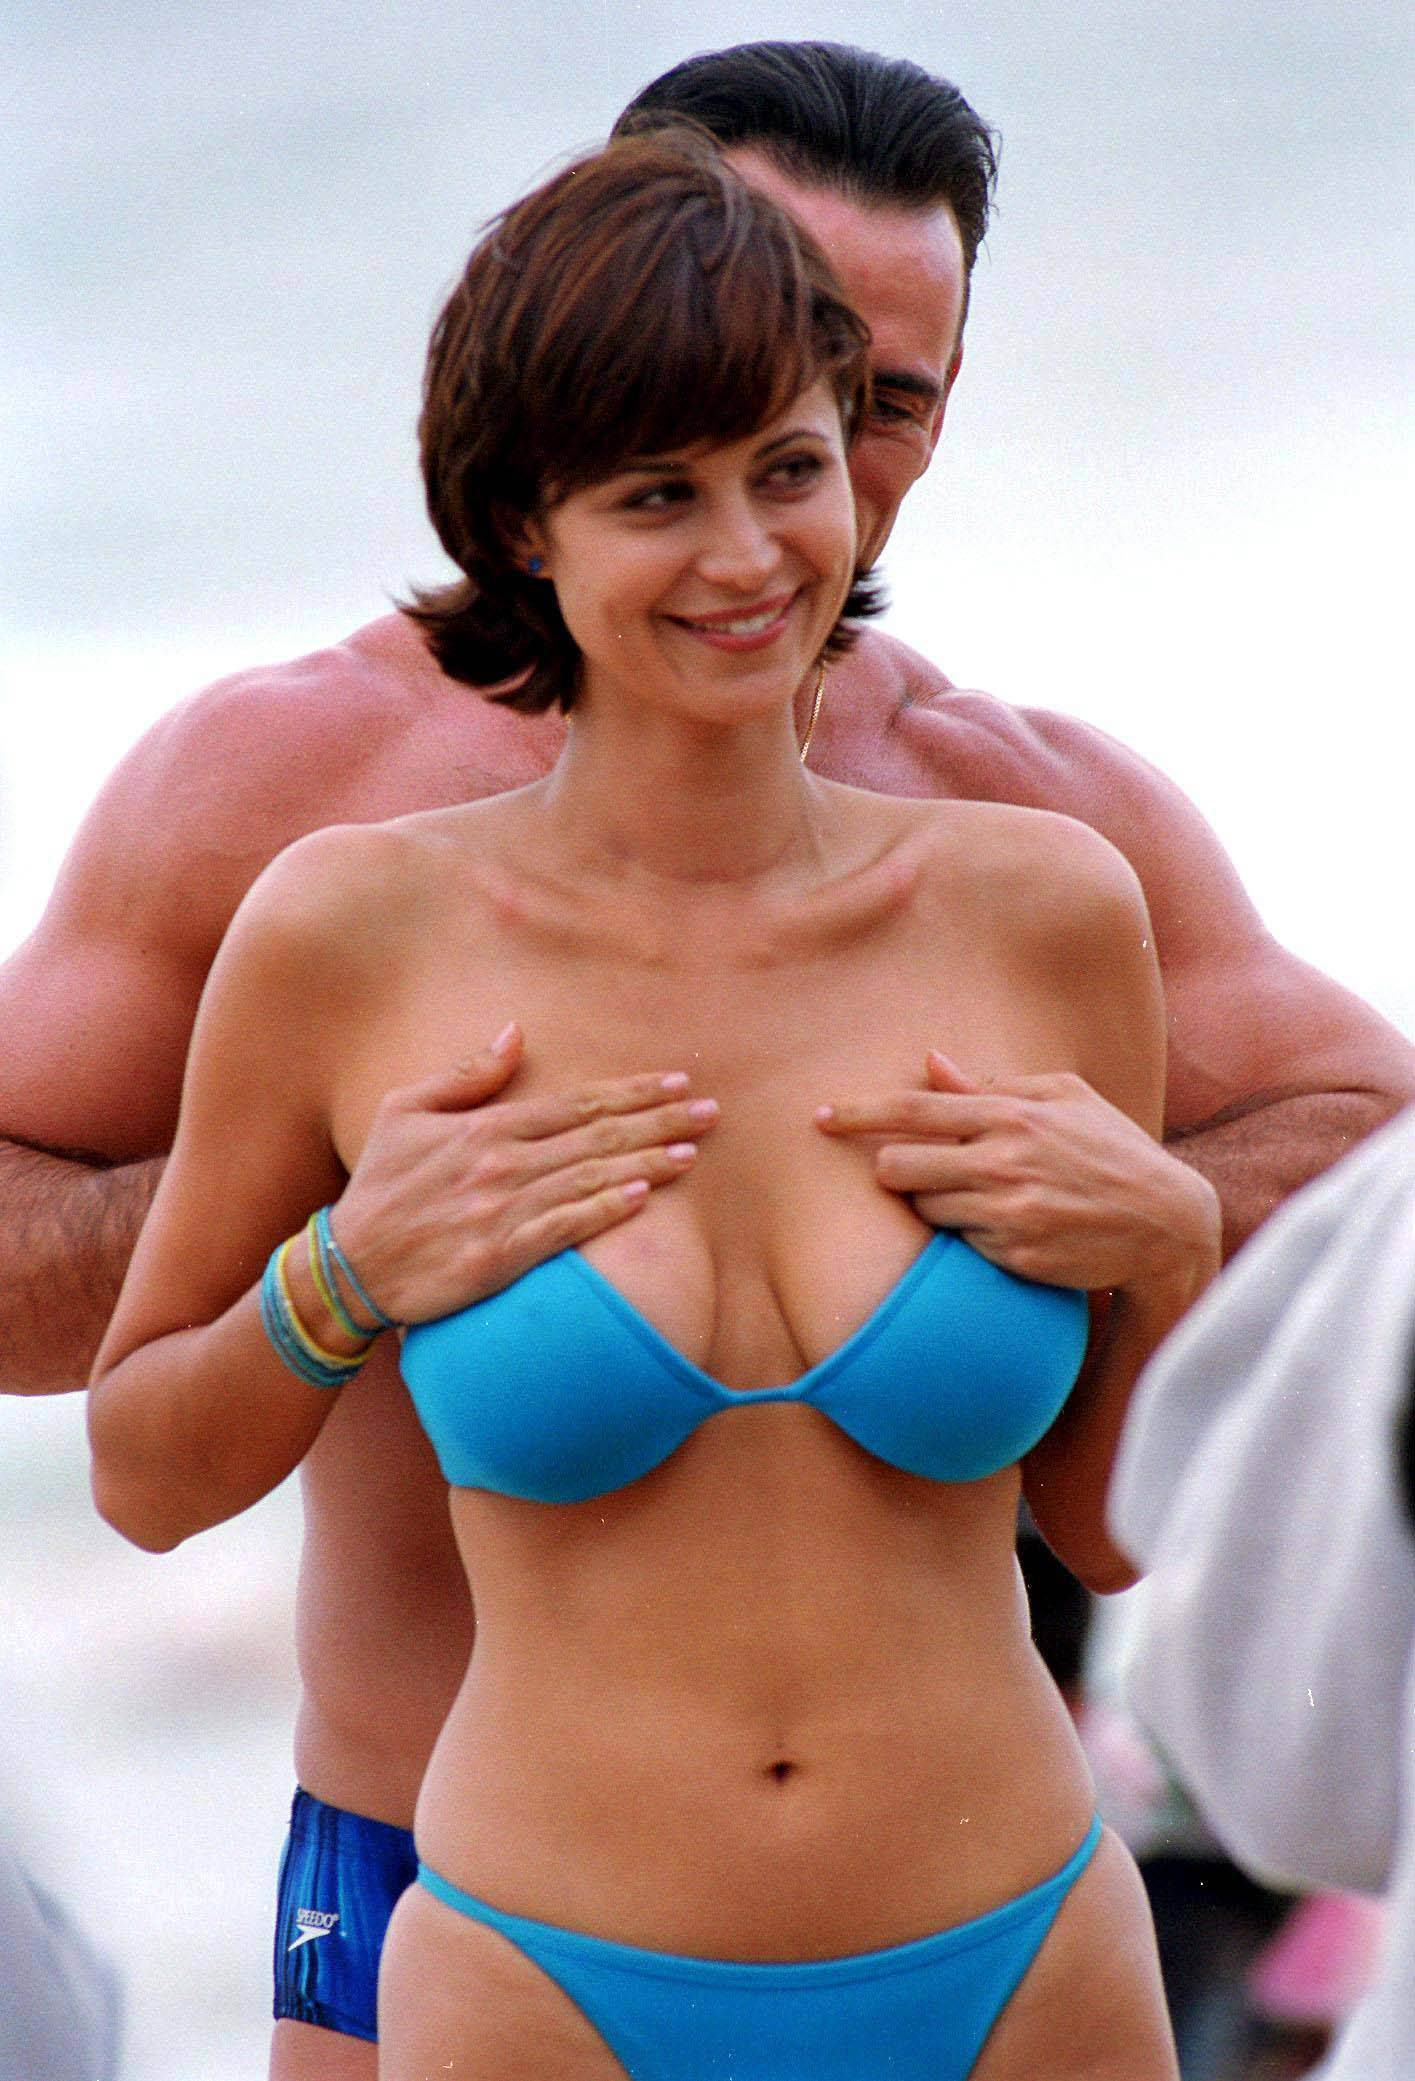 Catherine bell nude pics and pics